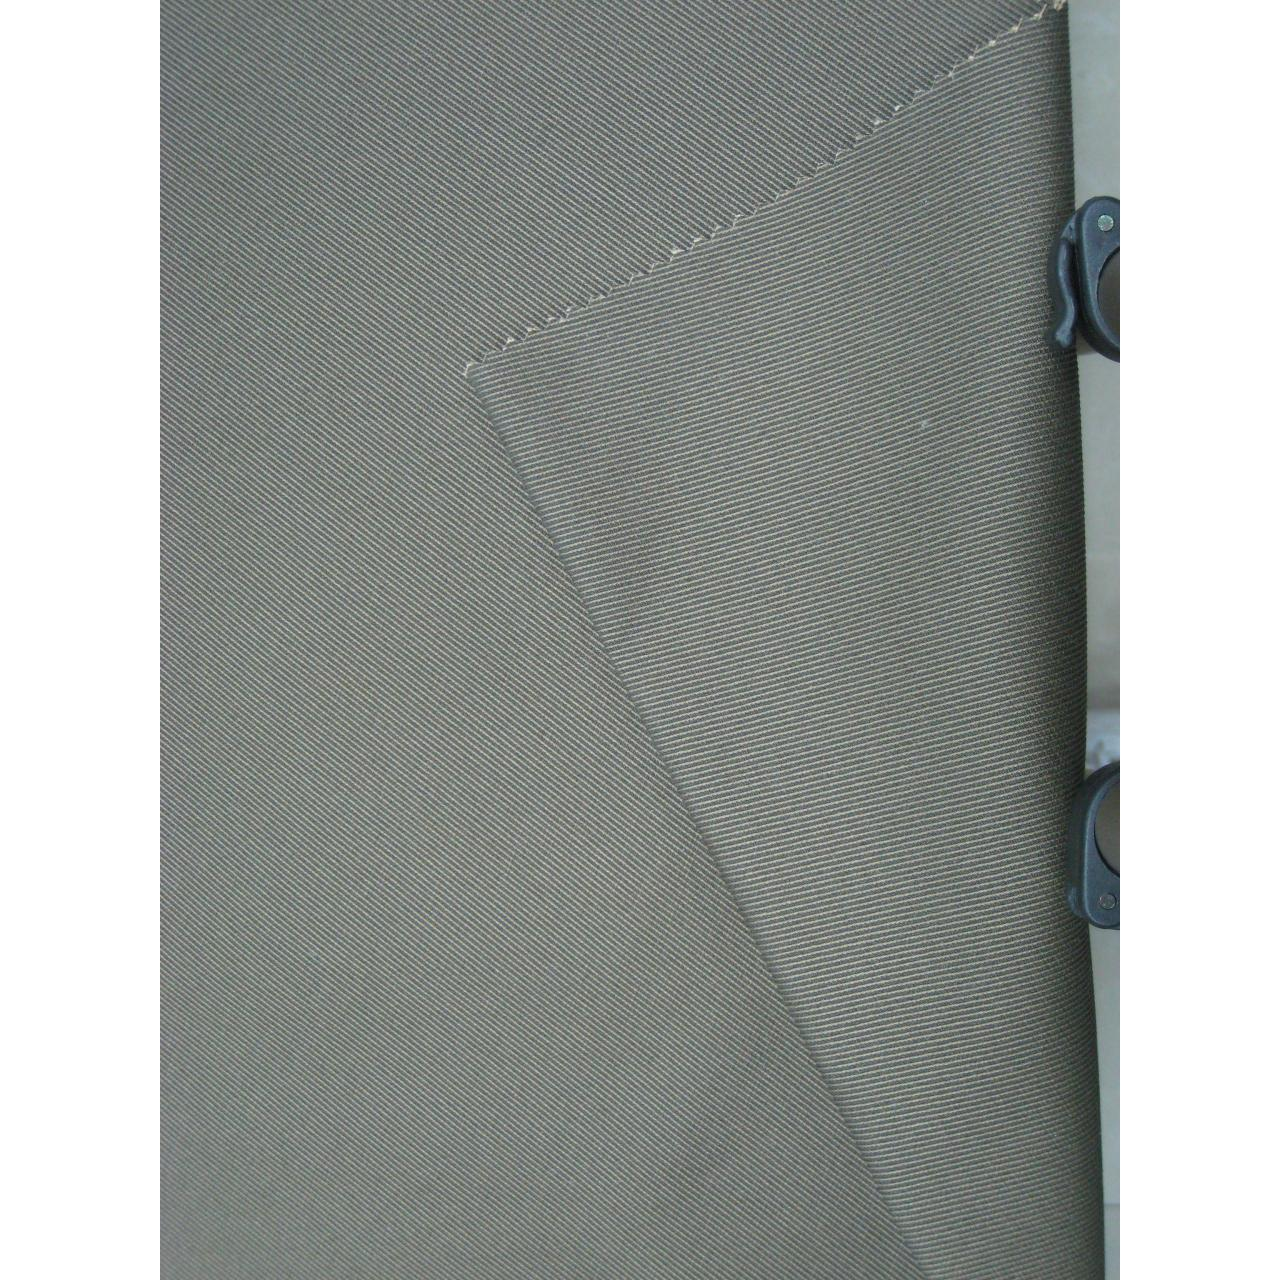 China Special 100%Cotton Cavalry Twill 116X58 16X12 57/58 CH-09089 on sale